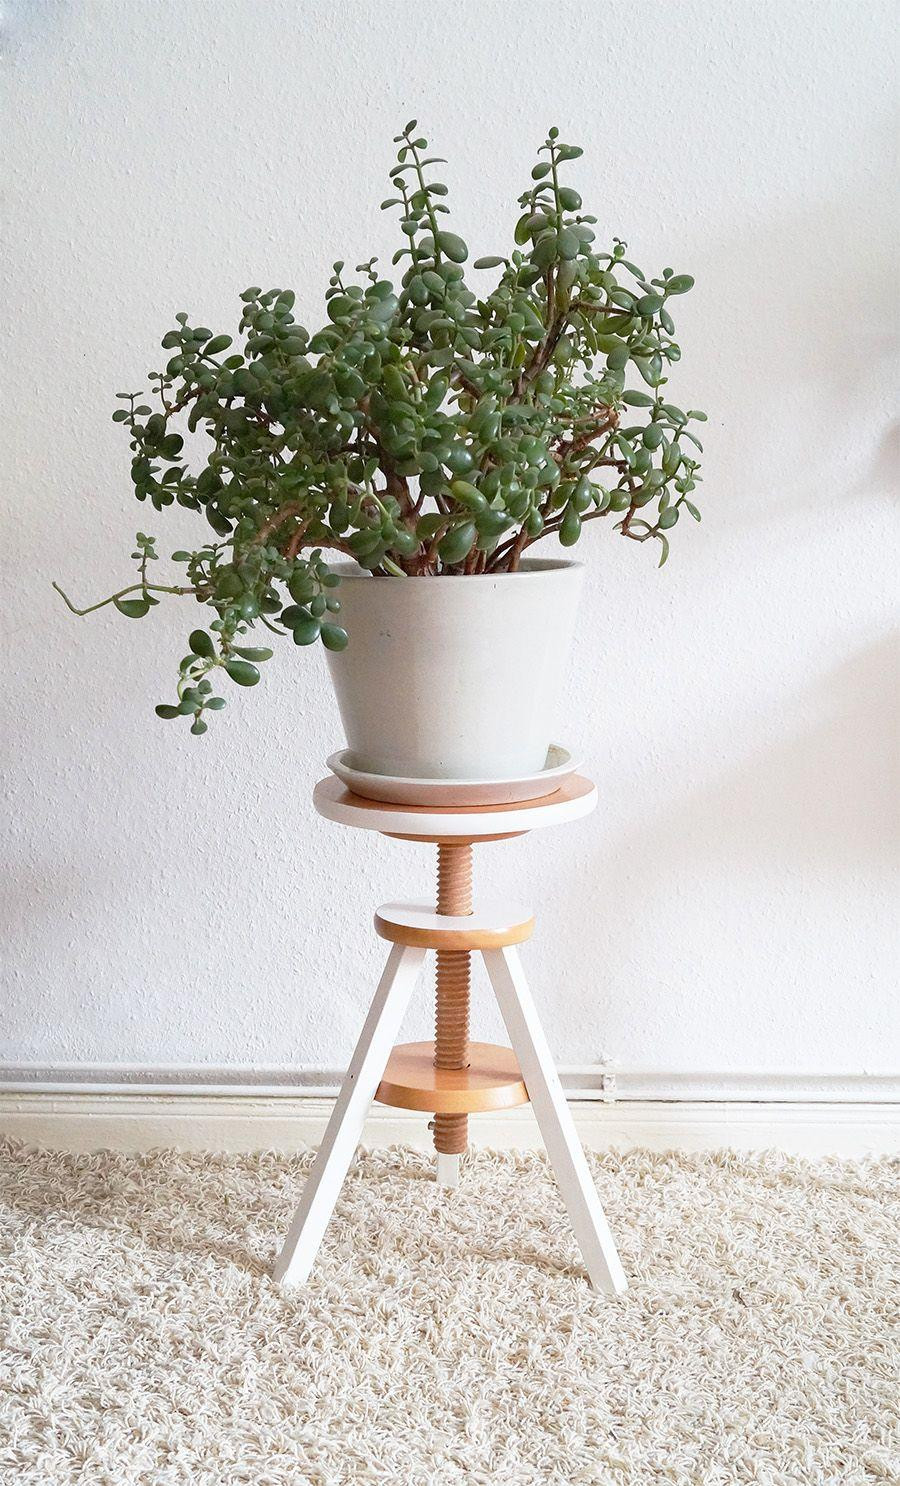 planter vase with stand of diy plant table beautiful 48 diy plant stand ideas to fill your home for vases decorative flower diy plant table fresh 20 clever diy planters pots and plant stands home